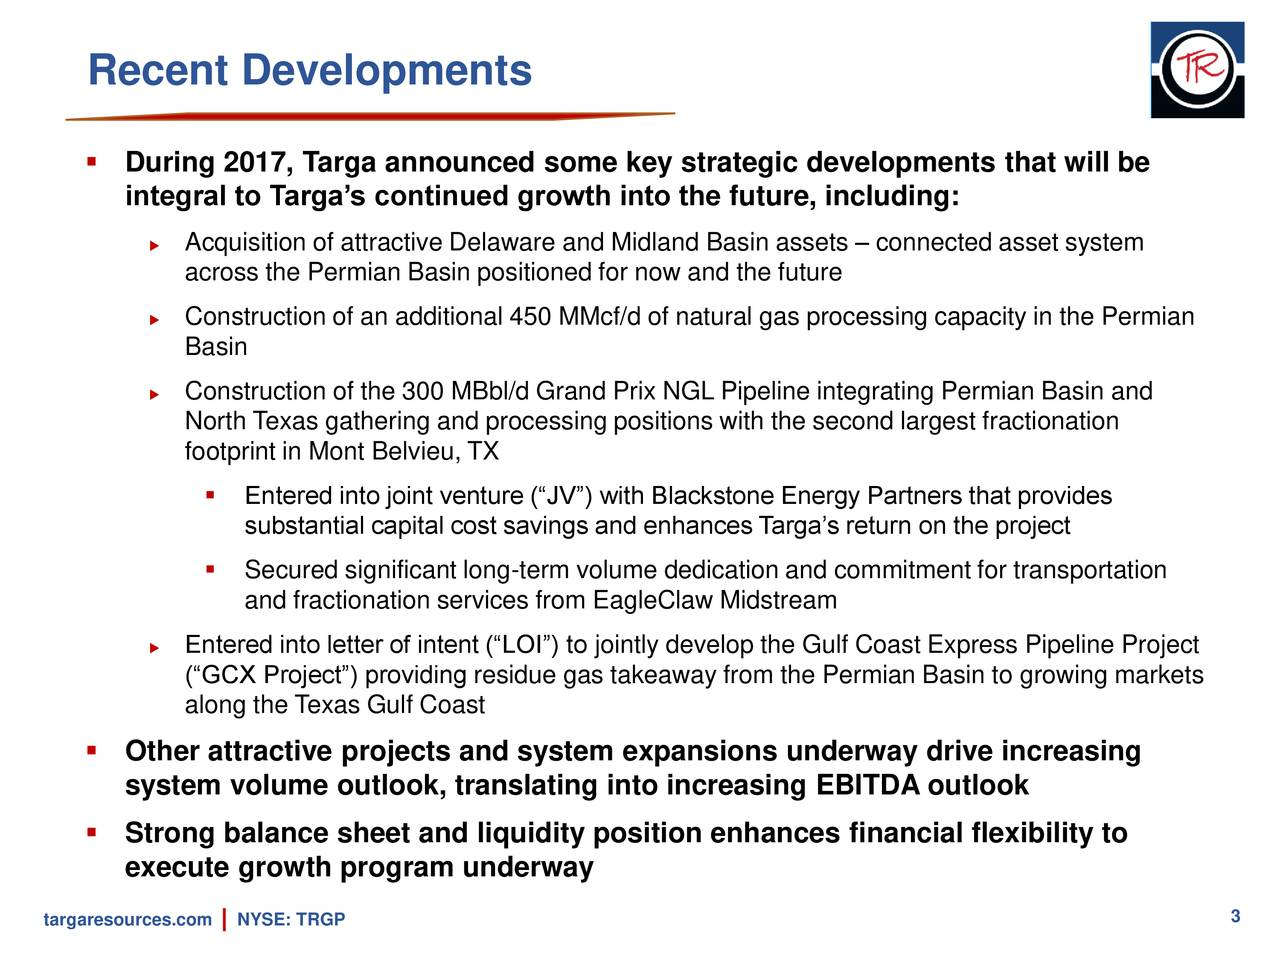 """ During 2017, Targa announced some key strategic developments that will be integral to Targa's continued growth into the future, including:  Acquisition of attractive Delaware and Midland Basin assets – connected asset system across the Permian Basin positioned for now and the future  Construction of an additional 450 MMcf/d of natural gas processing capacity in the Permian Basin  Construction of the 300 MBbl/d Grand Prix NGL Pipeline integrating Permian Basin and North Texas gathering and processing positions with the second largest fractionation footprint in Mont Belvieu, TX  Entered into joint venture (""""JV"""") with Blackstone Energy Partners that provides substantial capital cost savings and enhances Targa's return on the project  Secured significant long-term volume dedication and commitment for transportation and fractionation services from EagleClaw Midstream  Entered into letter of intent (""""LOI"""") to jointly develop the Gulf Coast Express Pipeline Project (""""GCX Project"""") providing residue gas takeaway from the Permian Basin to growing markets along the Texas Gulf Coast  Other attractive projects and system expansions underway drive increasing system volume outlook, translating into increasing EBITDA outlook  Strong balance sheet and liquidity position enhances financial flexibility to execute growth program underway 3 targaresources.coNYSE: TRGP"""